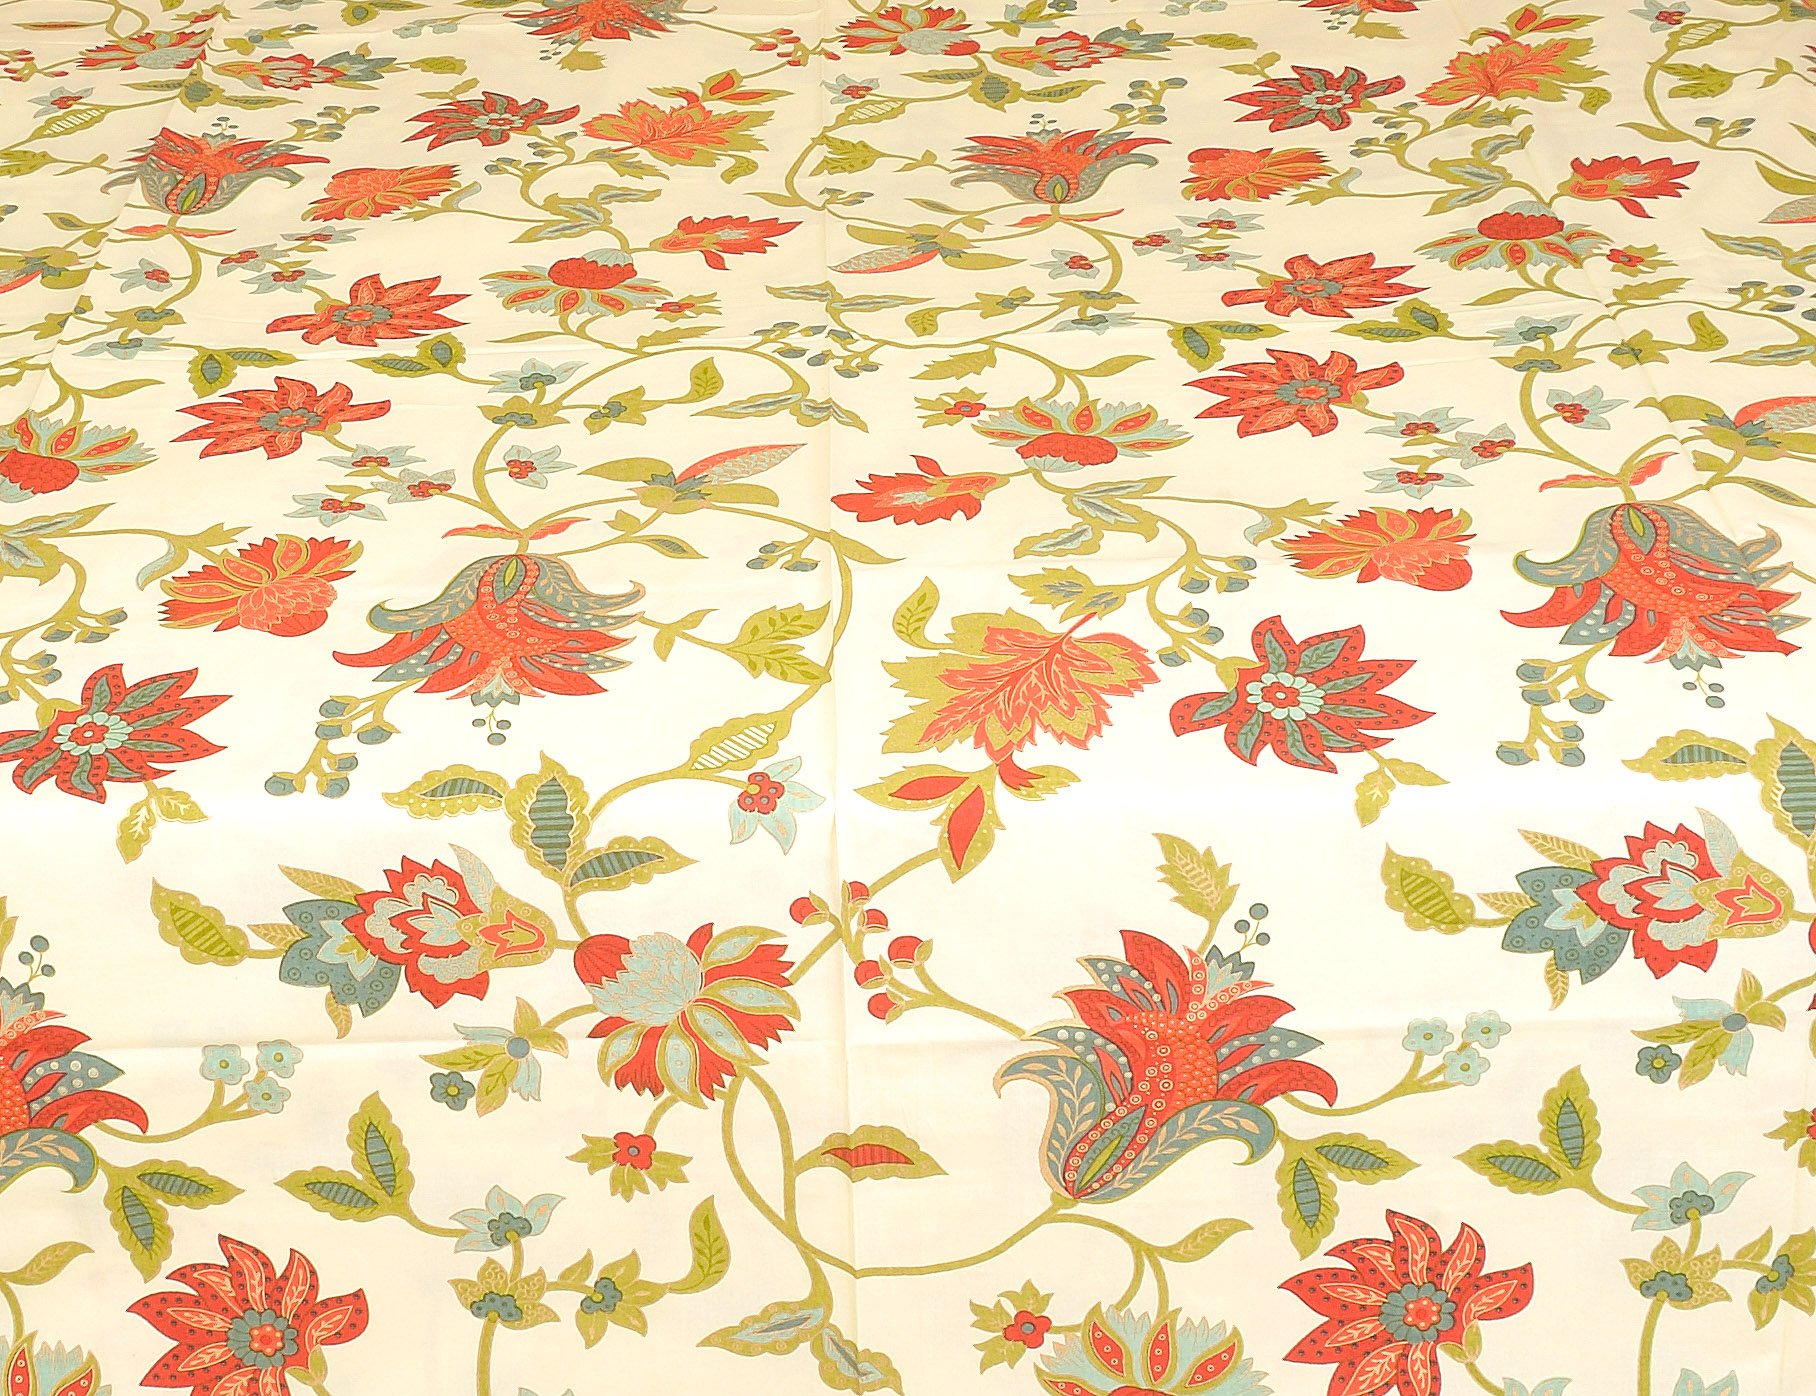 Exotic India Bedspread from Sanganer Printed Flowers Leaves - Pure Cotton Pillow Covers - Color Cream Red Color by Exotic India (Image #2)